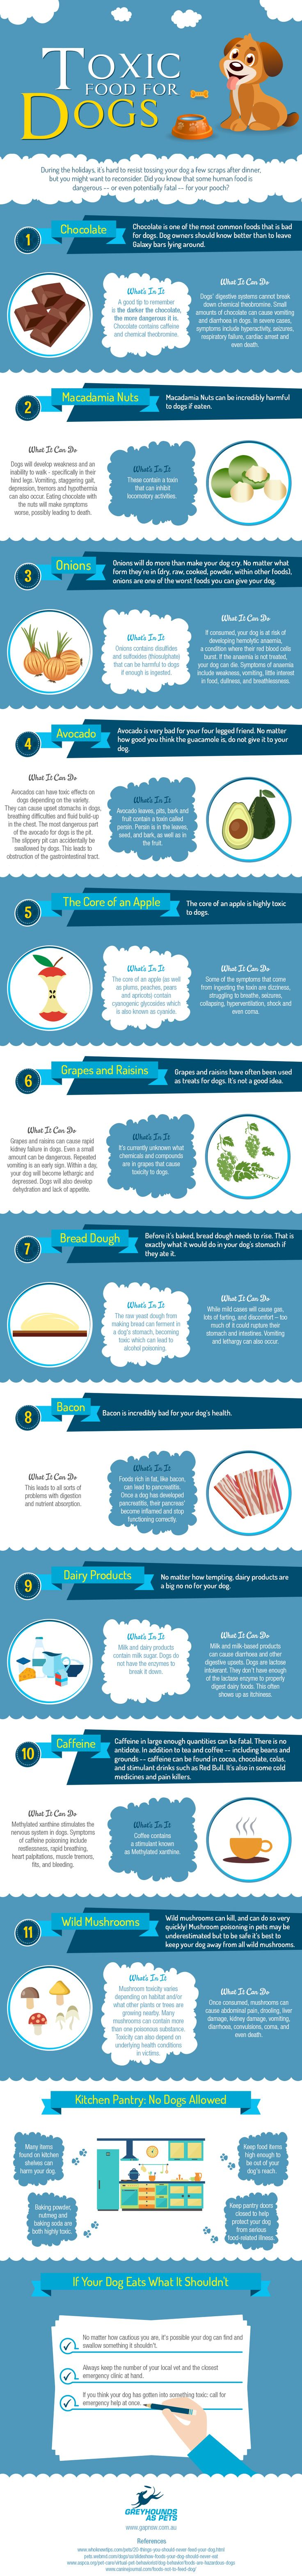 Toxic Foods for Your Dogs [Infographic]   Animal Bliss